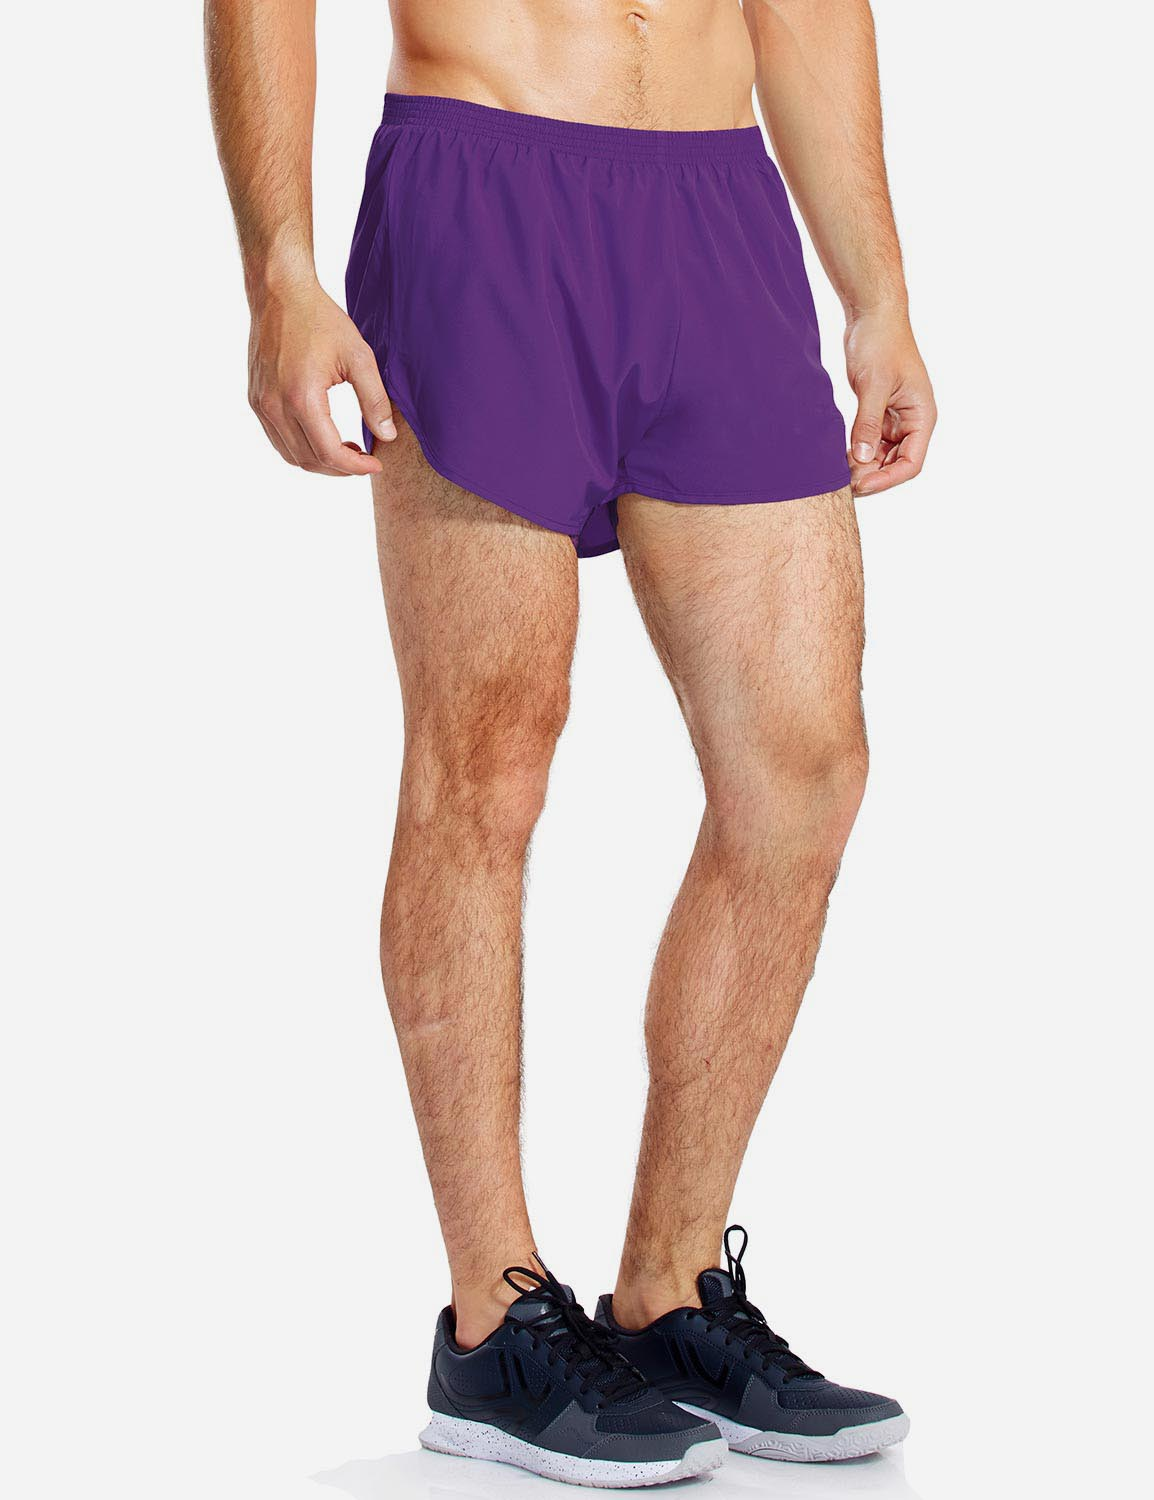 Baleaf Mens 3'' Split-Leg Basic Running Shorts purple side